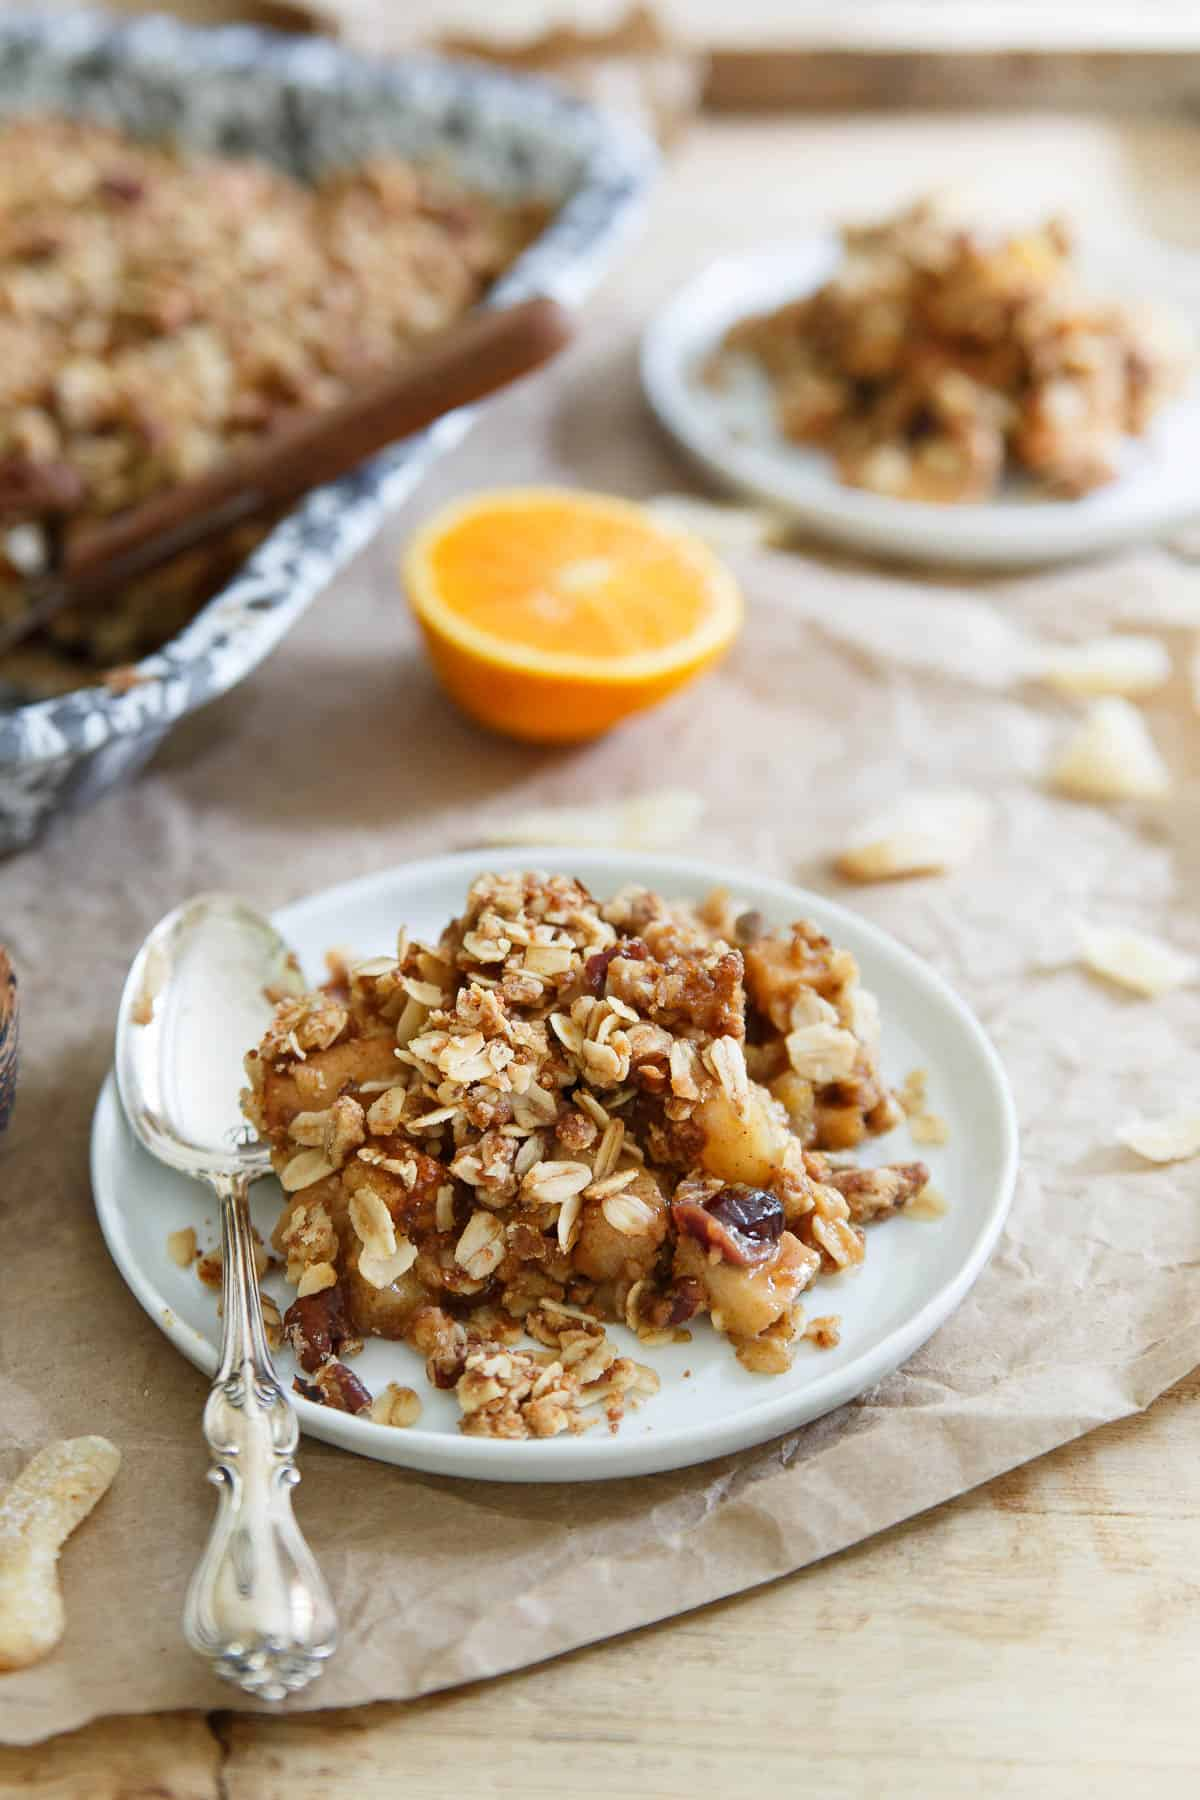 Orange Ginger Pear and Quince Crisp would complete any fall meal. A great Thanksgiving dessert alternative.